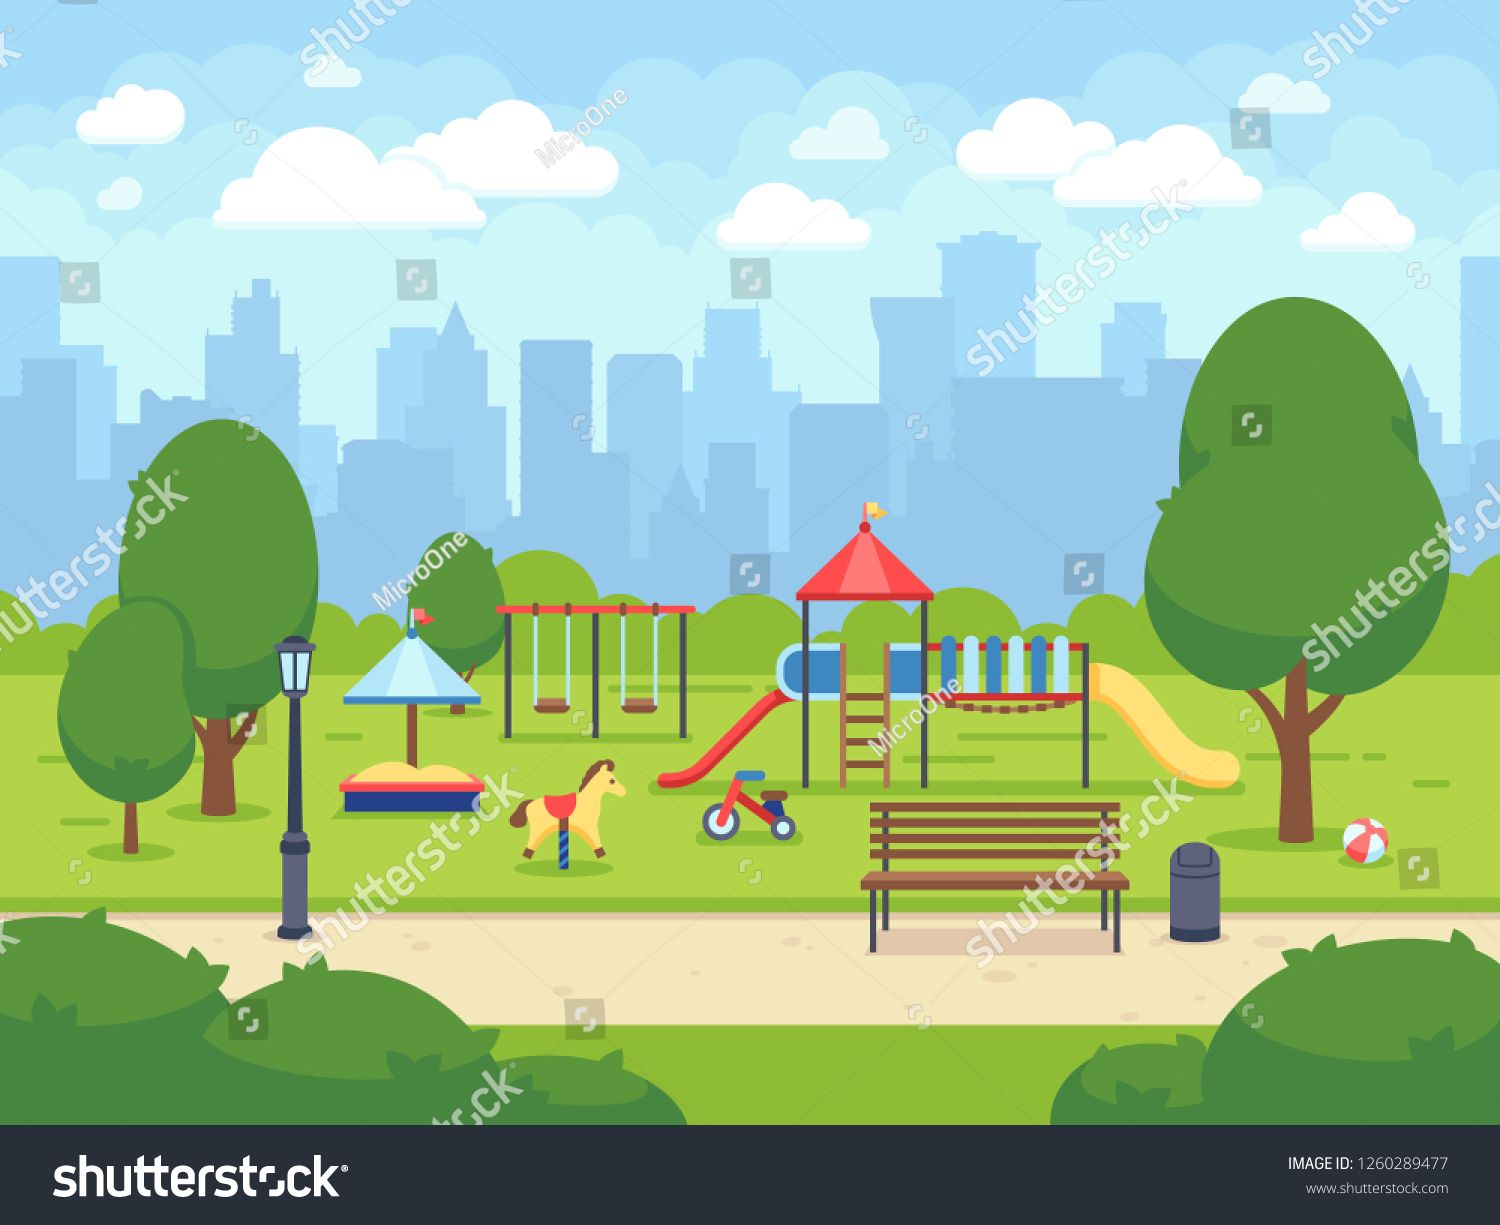 Urban Summer Public Garden With Kids Playground Cartoon City Park With Cityscape Sponsored Ad Garden Ki Gardening For Kids Public Garden Kids Playground